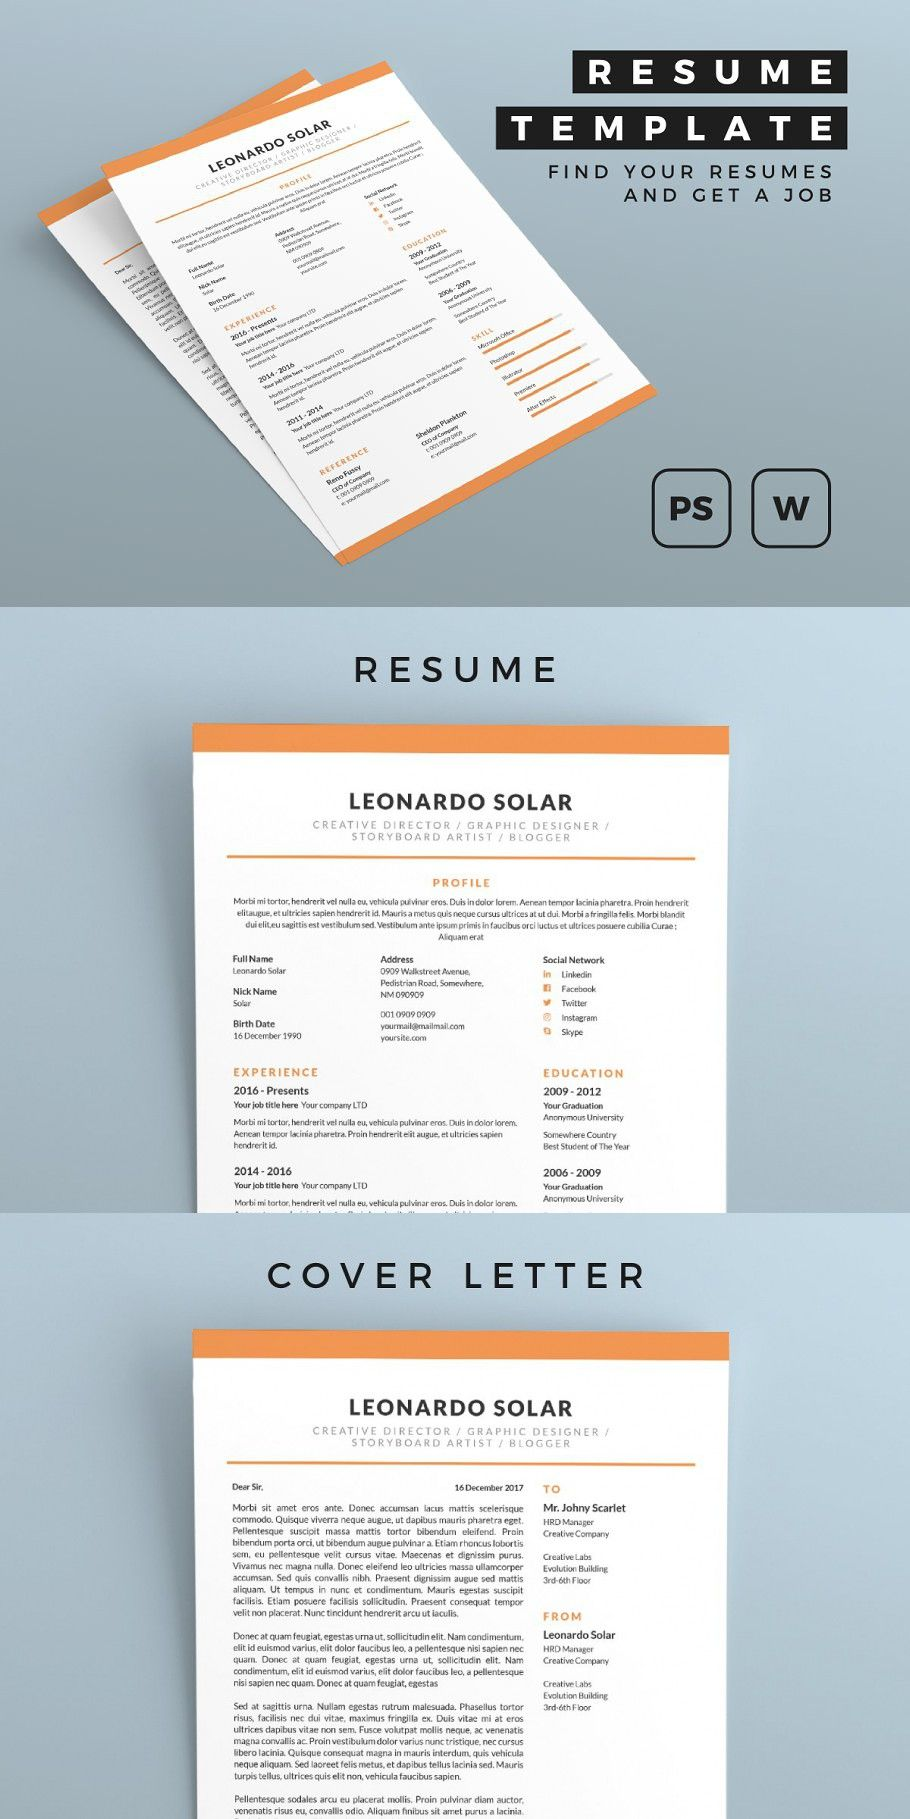 Resume in 2020 Simple resume template, Resume, How to